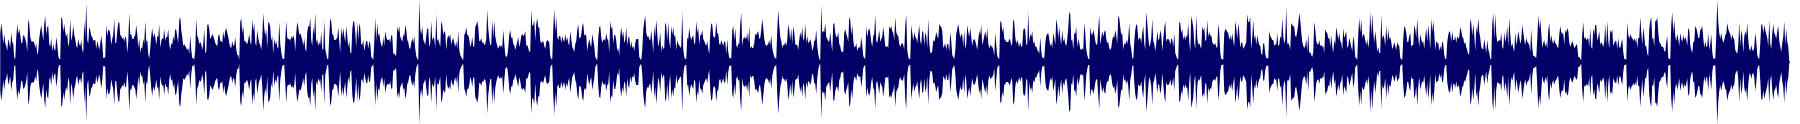 waveform of track #71739